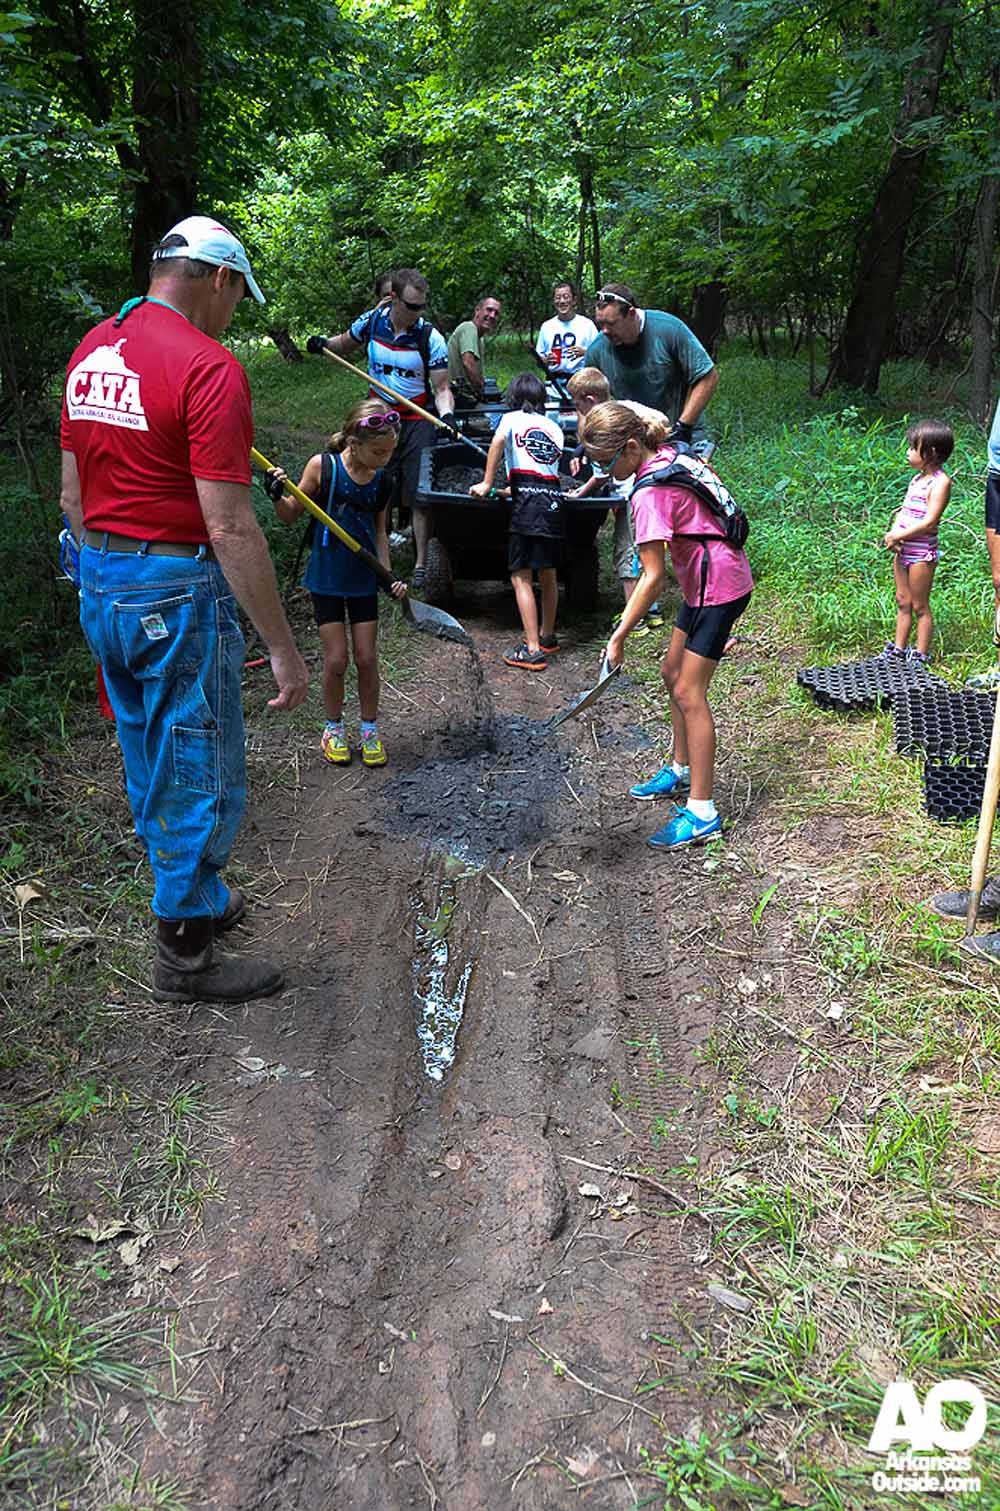 CATA getting kids involved in trail work.